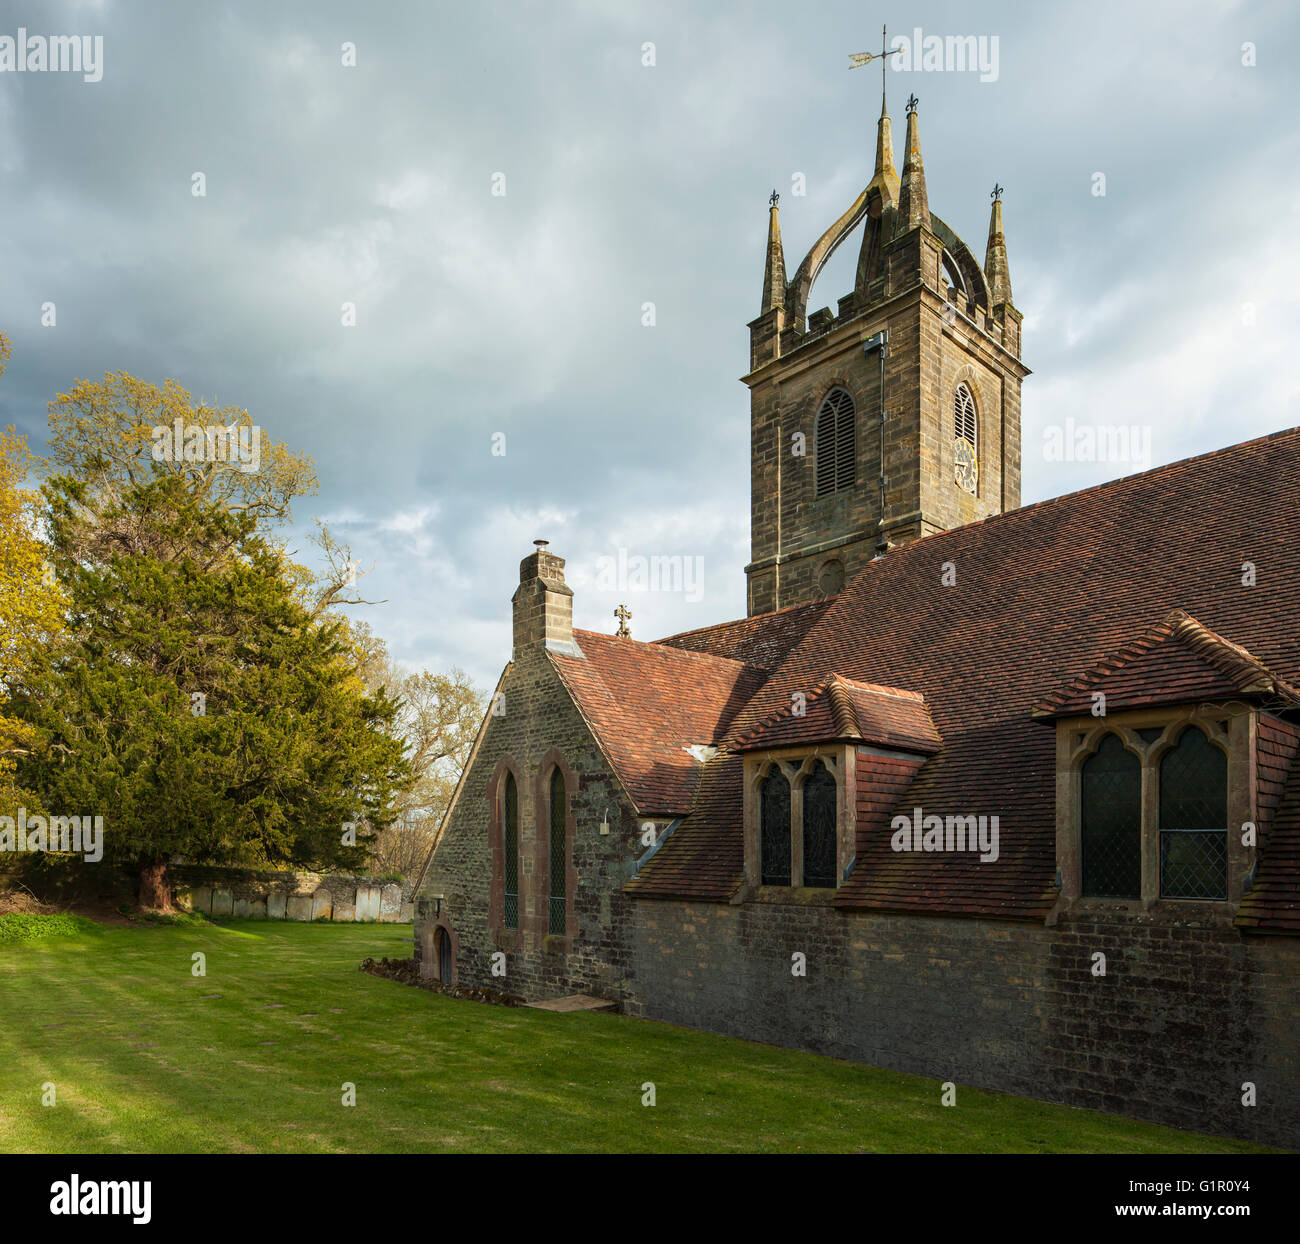 All Hallows church in Tillington near Petworth, West Sussex, England. Stock Photo